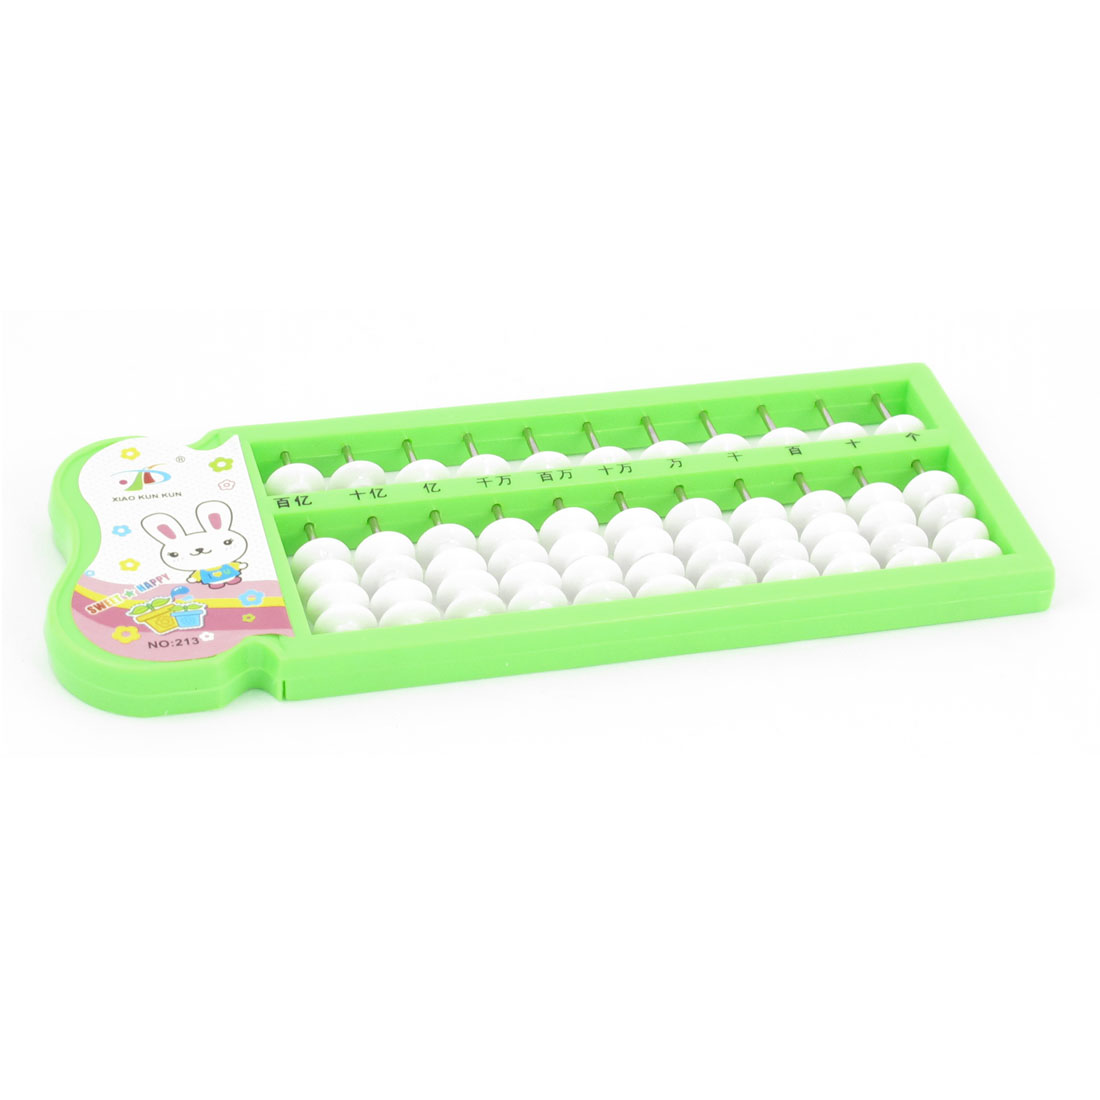 Education 55 Beads 11 Rows Grass Green Plastic Frame Mini Abacus Soroban